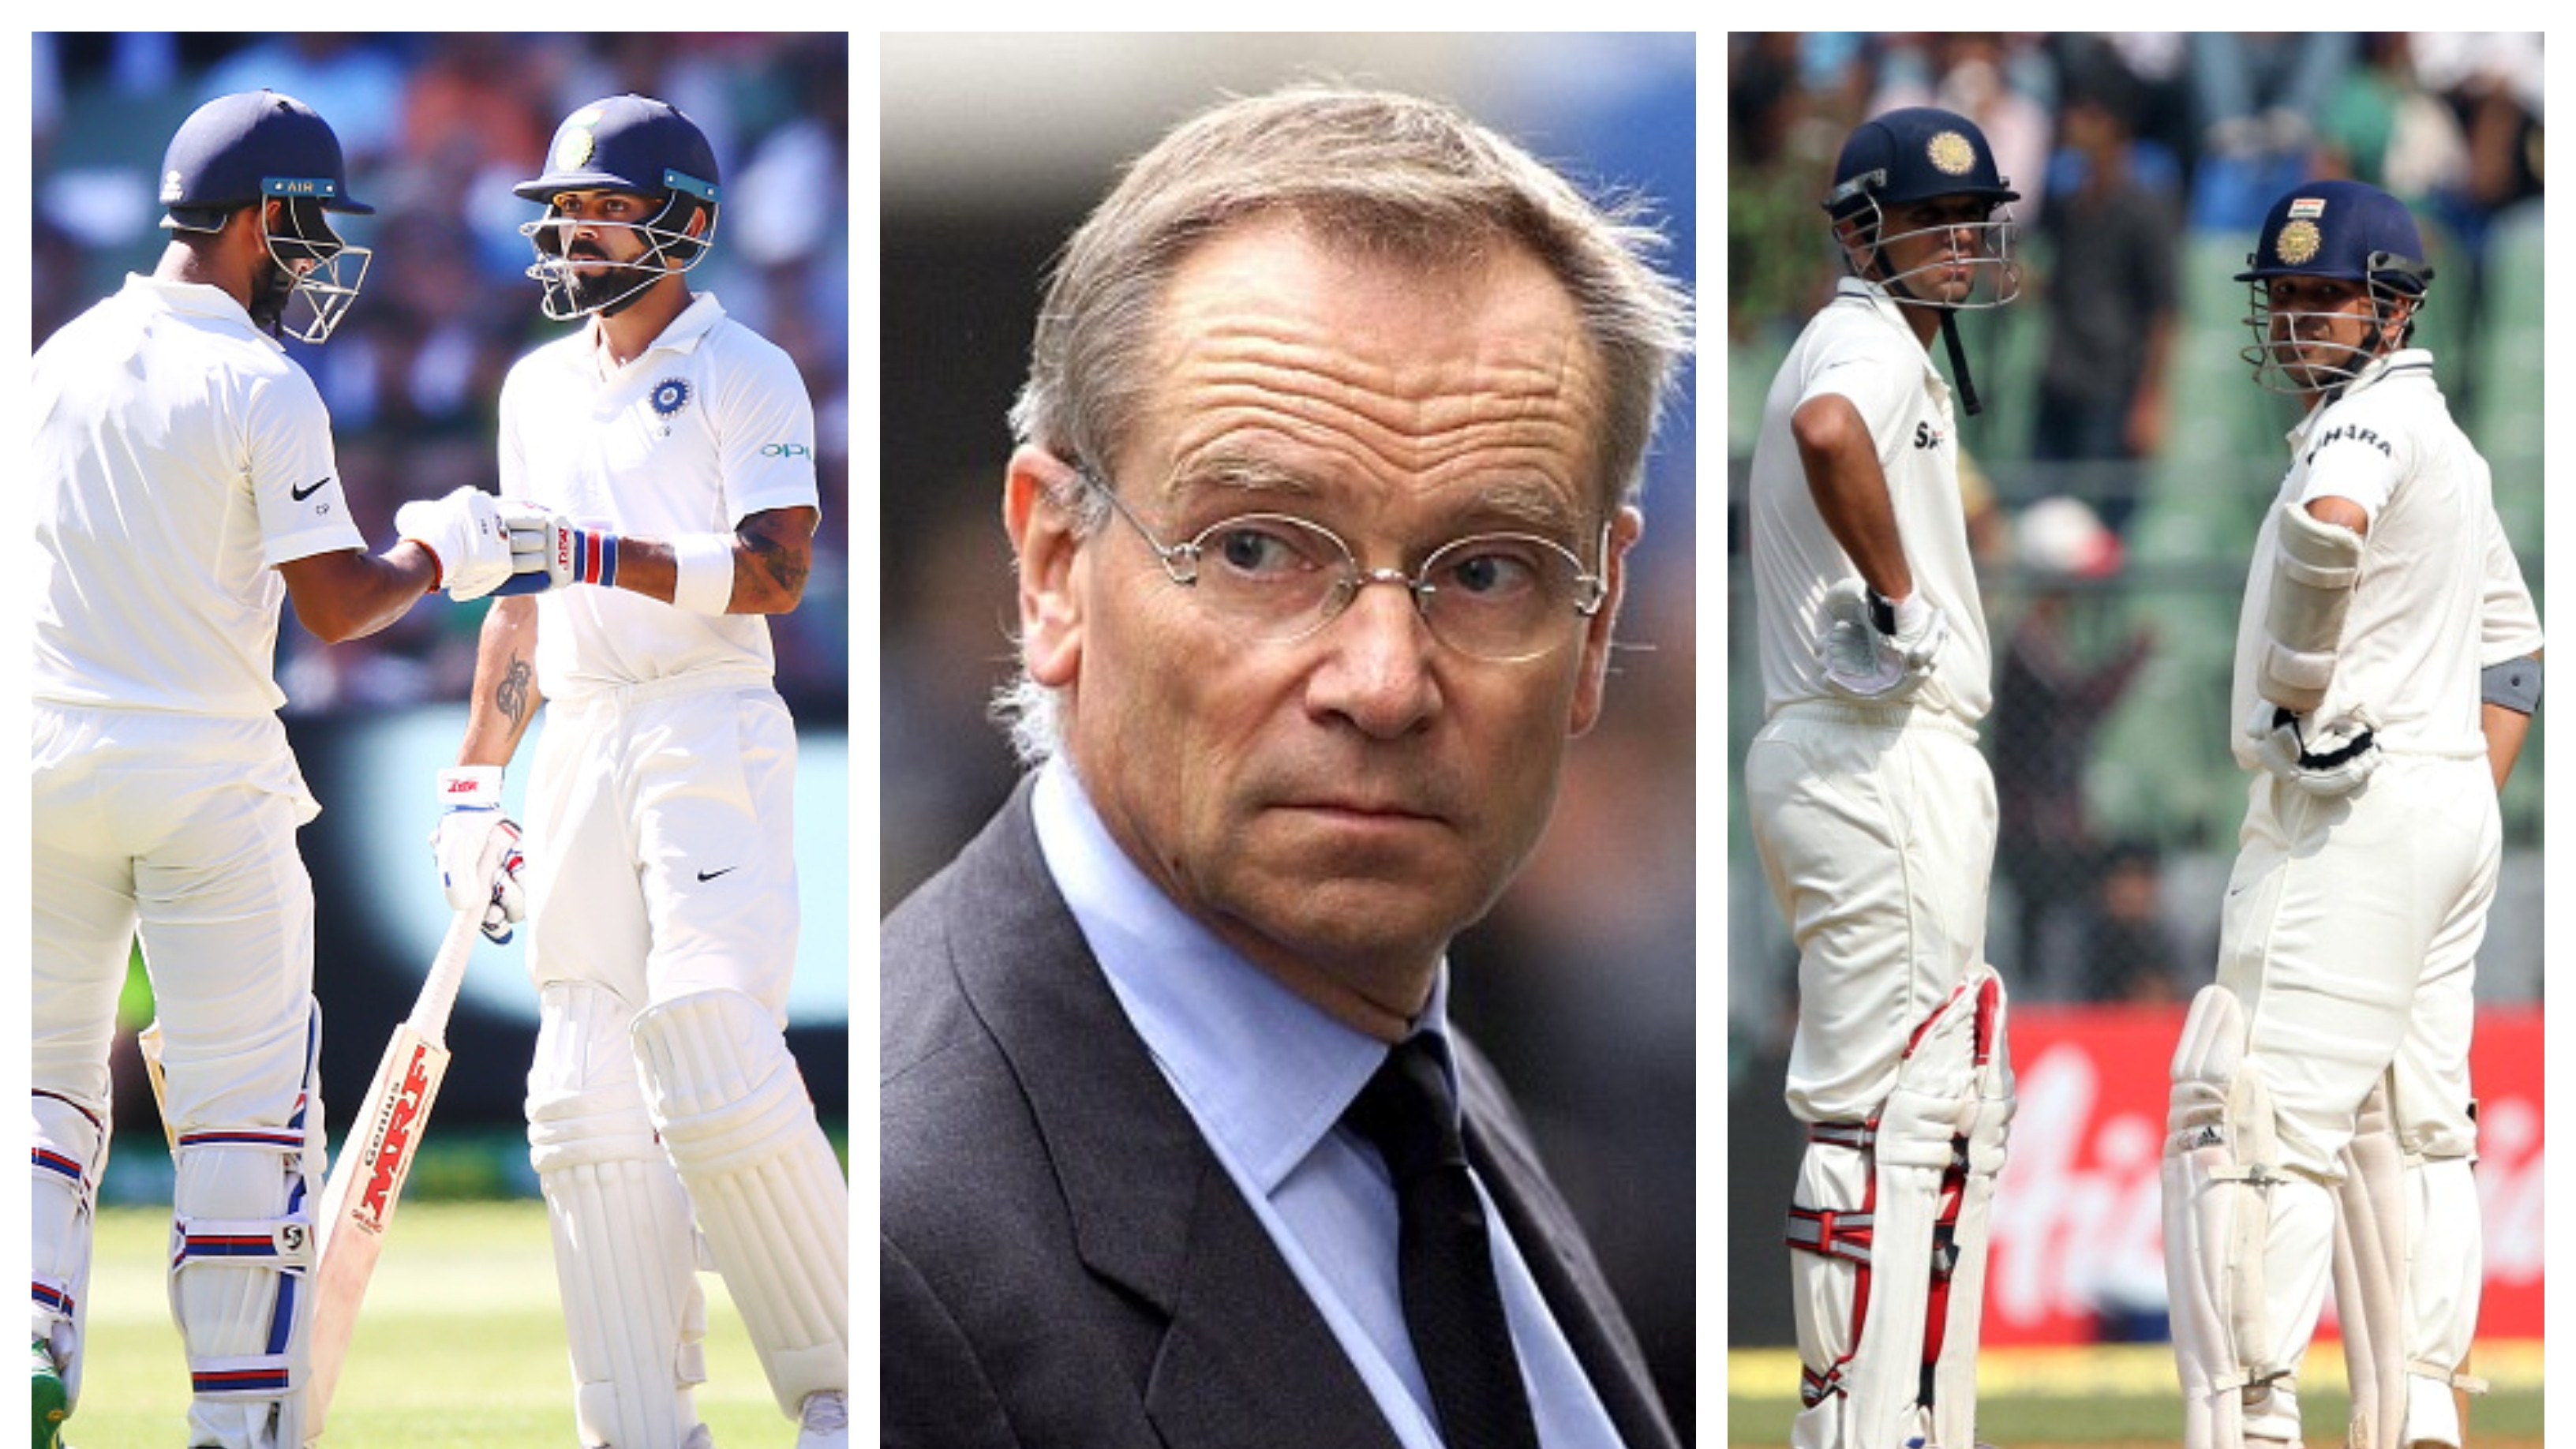 Pujara and Kohli are Tendulkar and Dravid of this era for India, says Jeffrey Archer